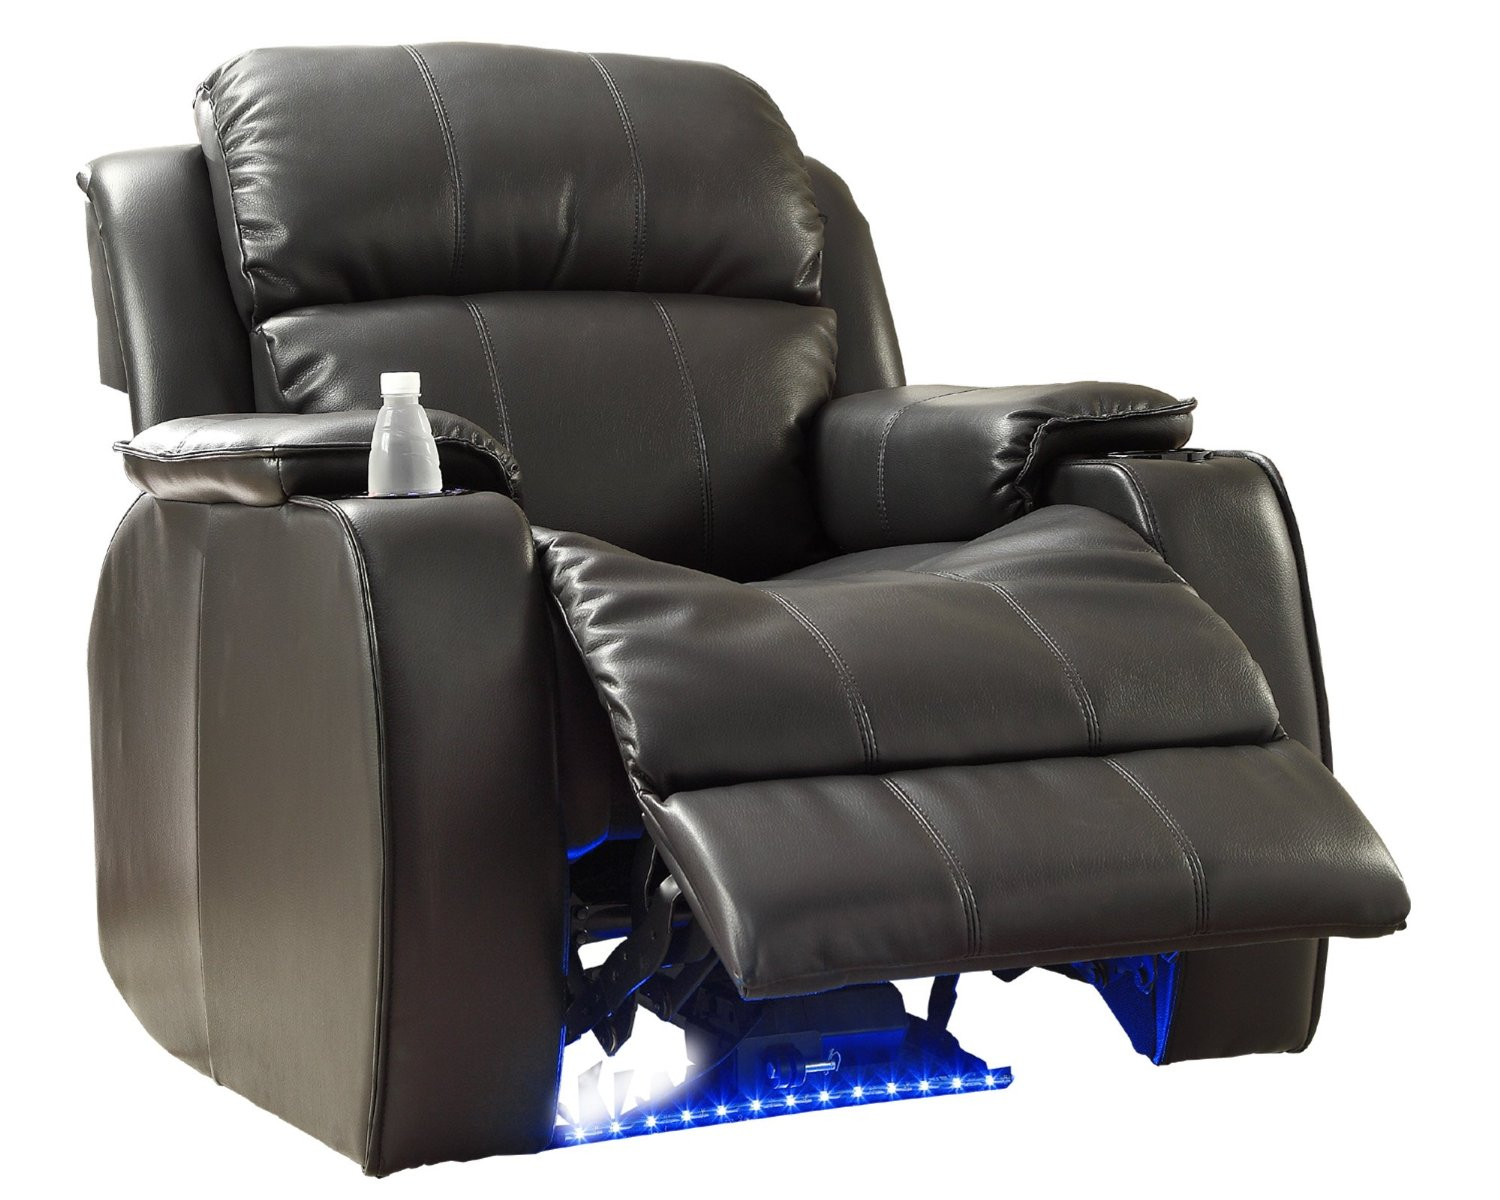 Best Leather Chairs Top 3 Best Quality Recliners With Coolers Best Recliners